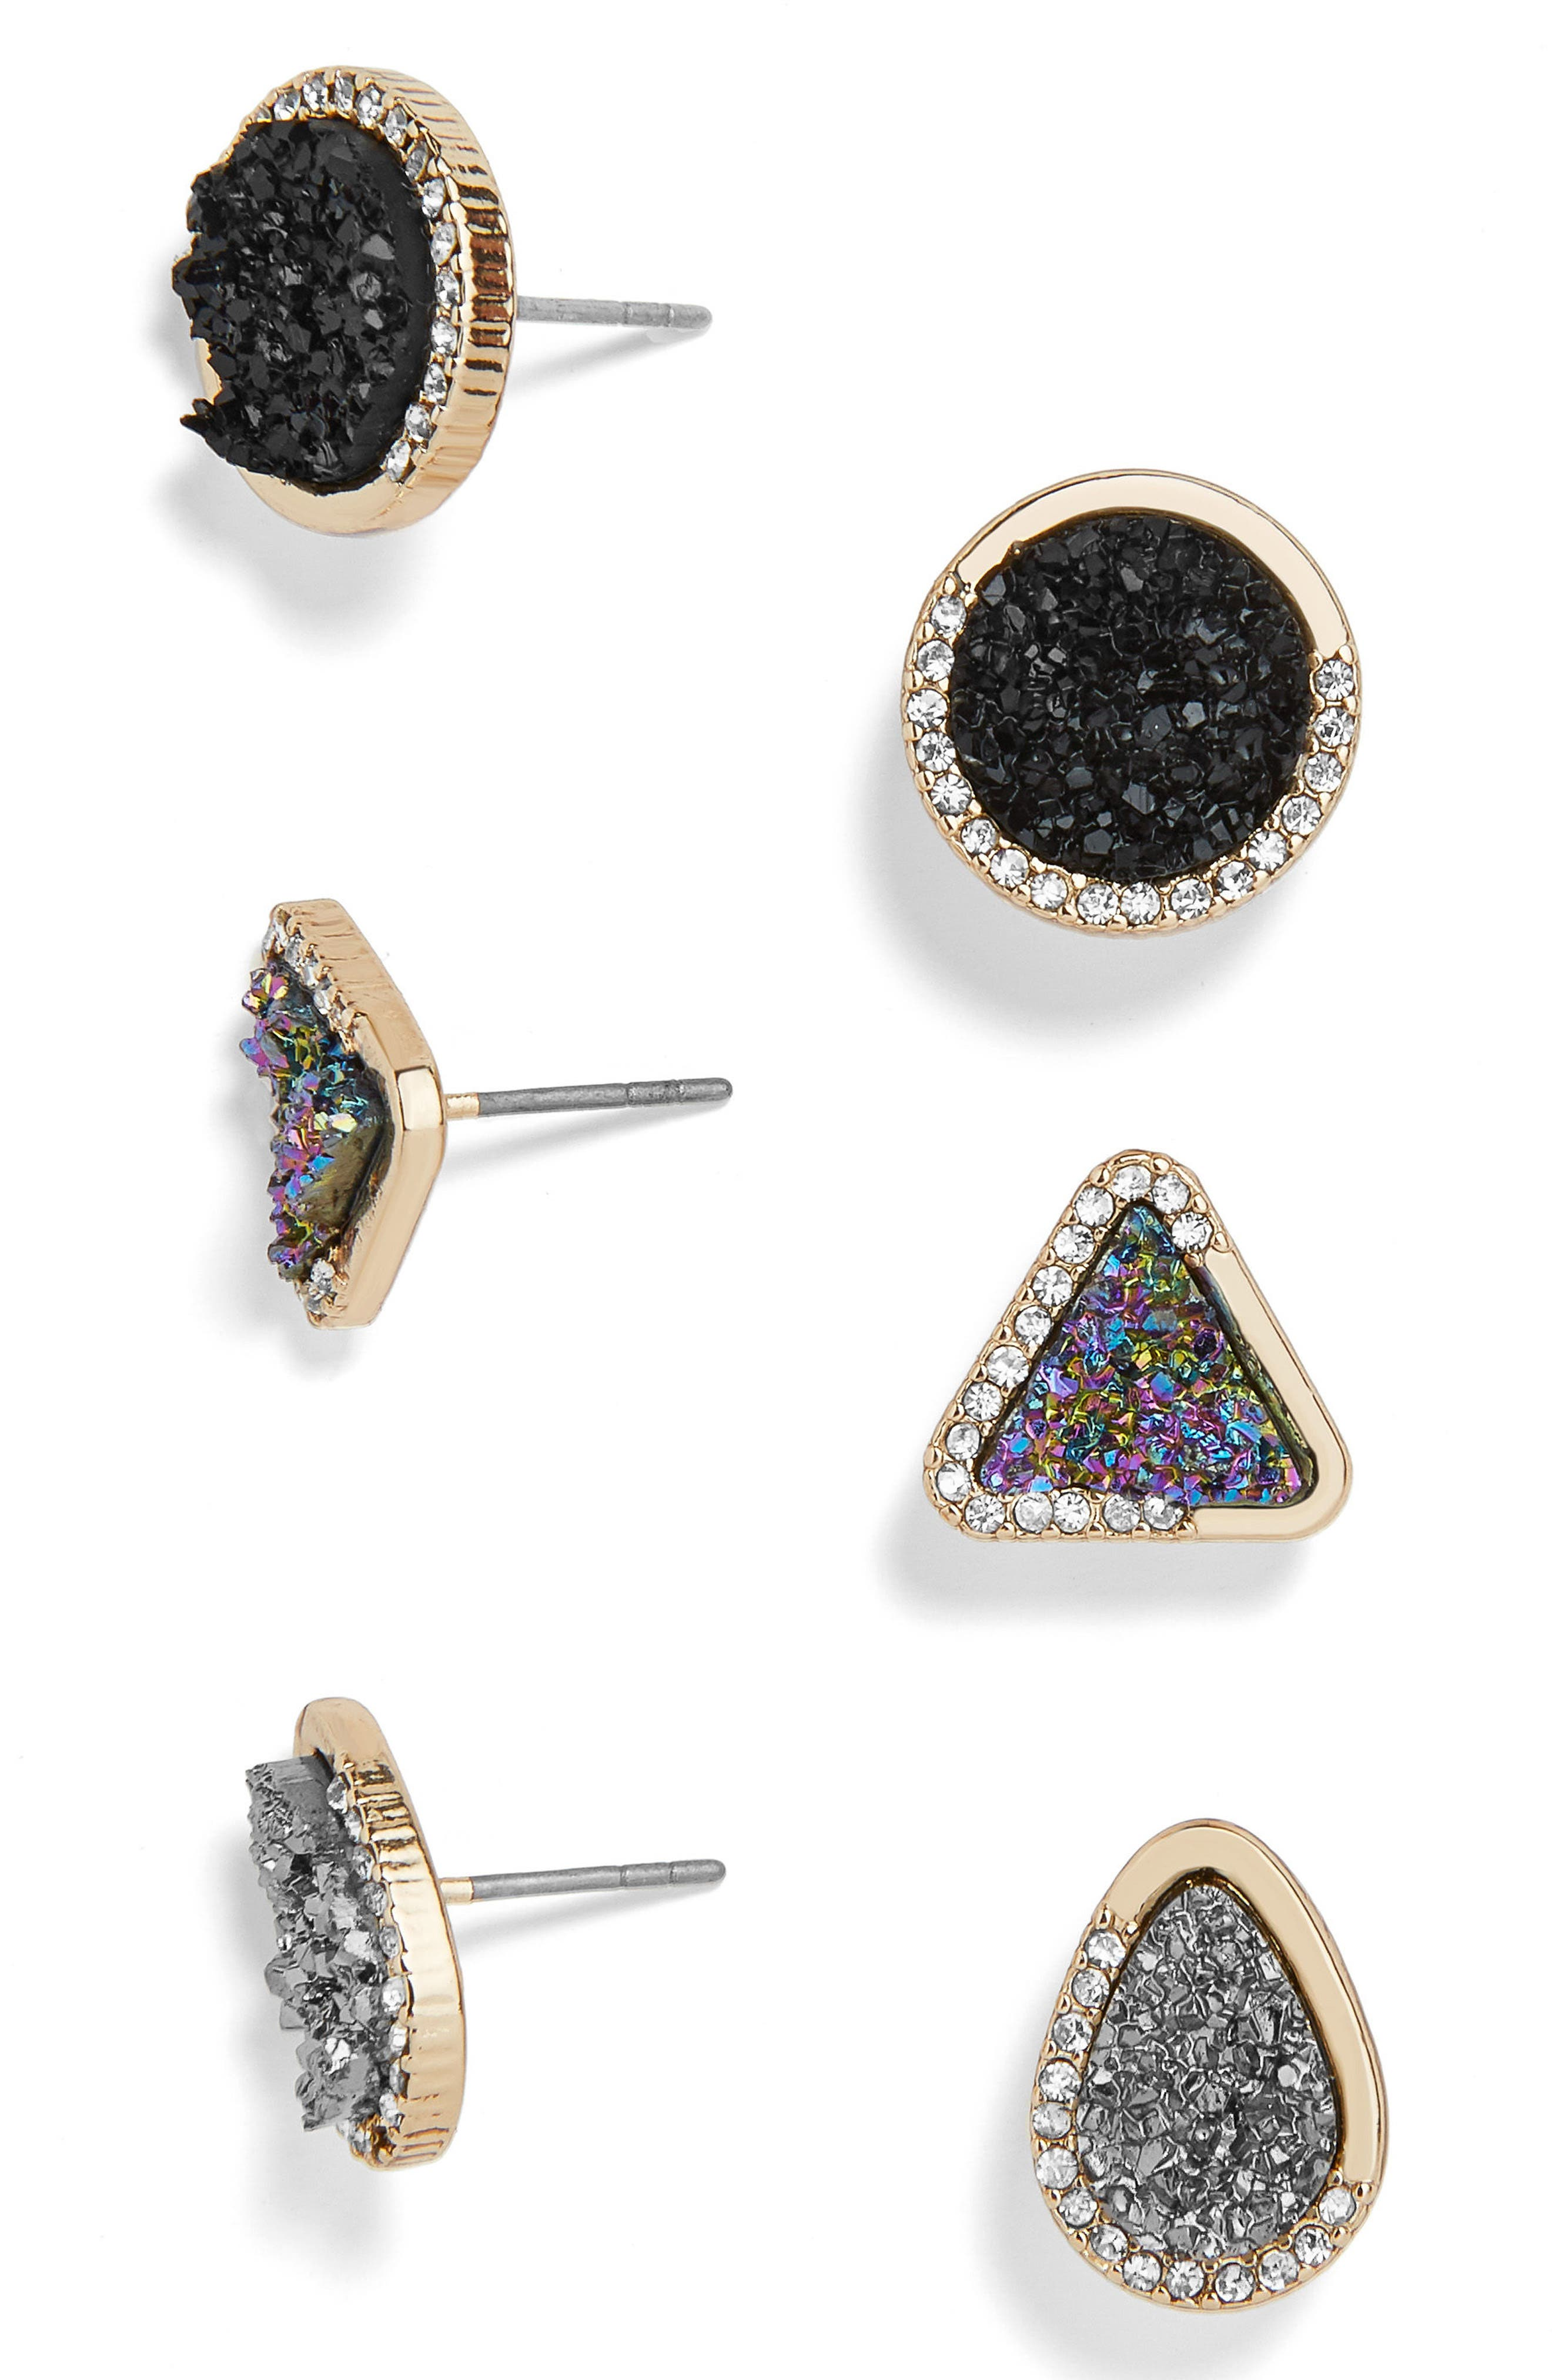 Over the Moon Set of 3 Assorted Stud Earrings,                             Main thumbnail 1, color,                             715